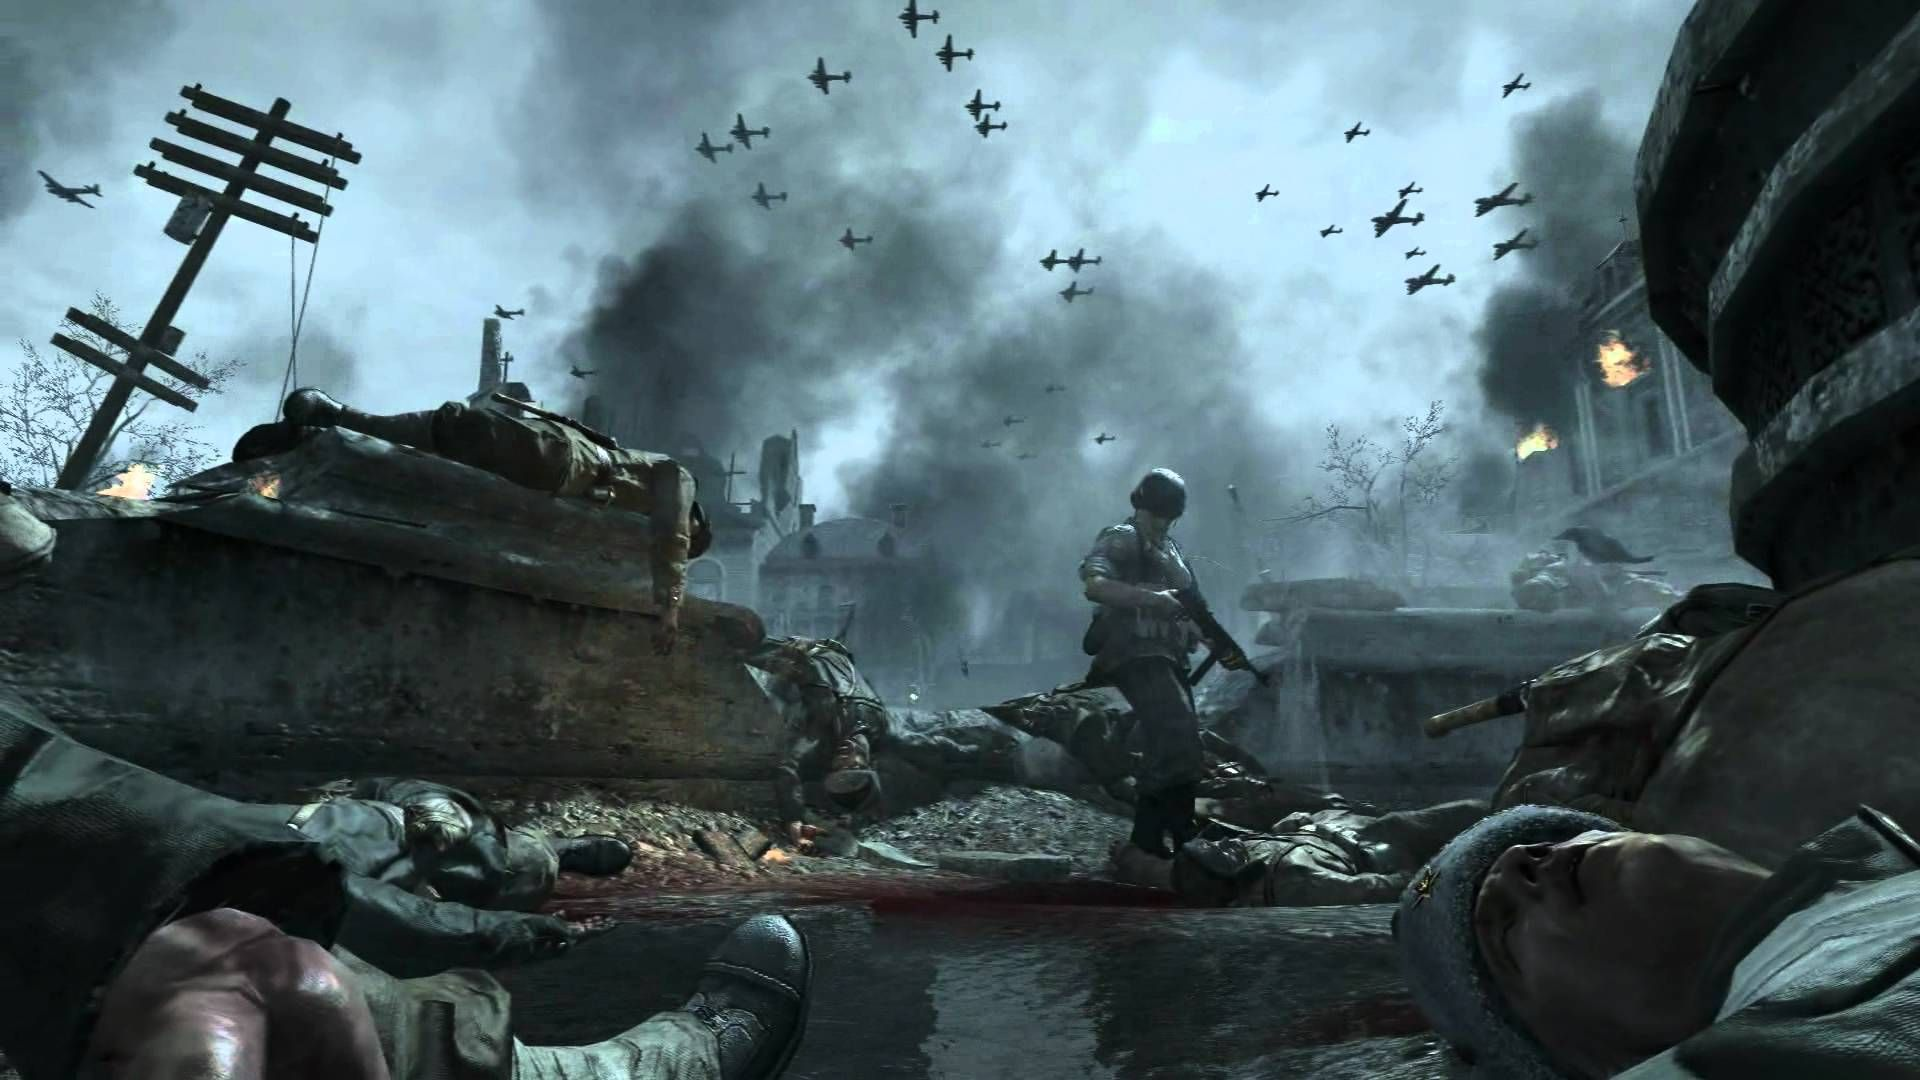 Pin by Games on Call of Duty WW2 | Call of duty world, Call